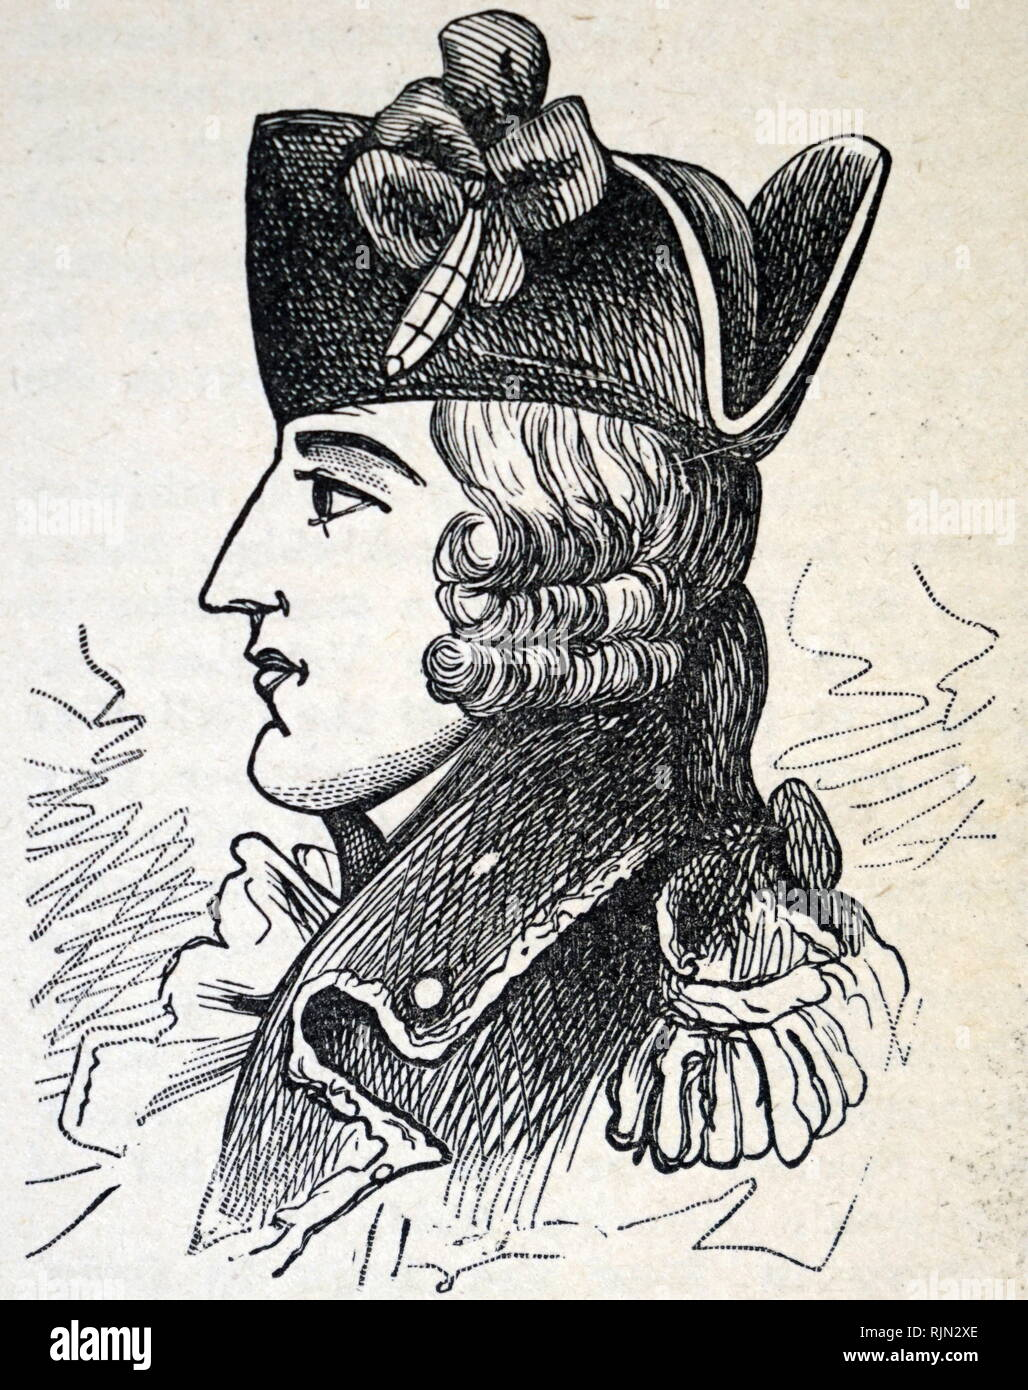 Illustration showing Major General Edward Braddock (January 1695 - 13 July 1755) was a British officer and commander-in-chief for the 13 colonies during the actions at the start of the French and Indian War (1754-1763) which is also known in Europe and Canada as the Seven Years' War (1756-1763). He is generally best remembered for his command of a disastrous expedition against the French-occupied Ohio River Valley then in western Virginia or Pennsylvania in 1755, in which he lost his life. - Stock Image